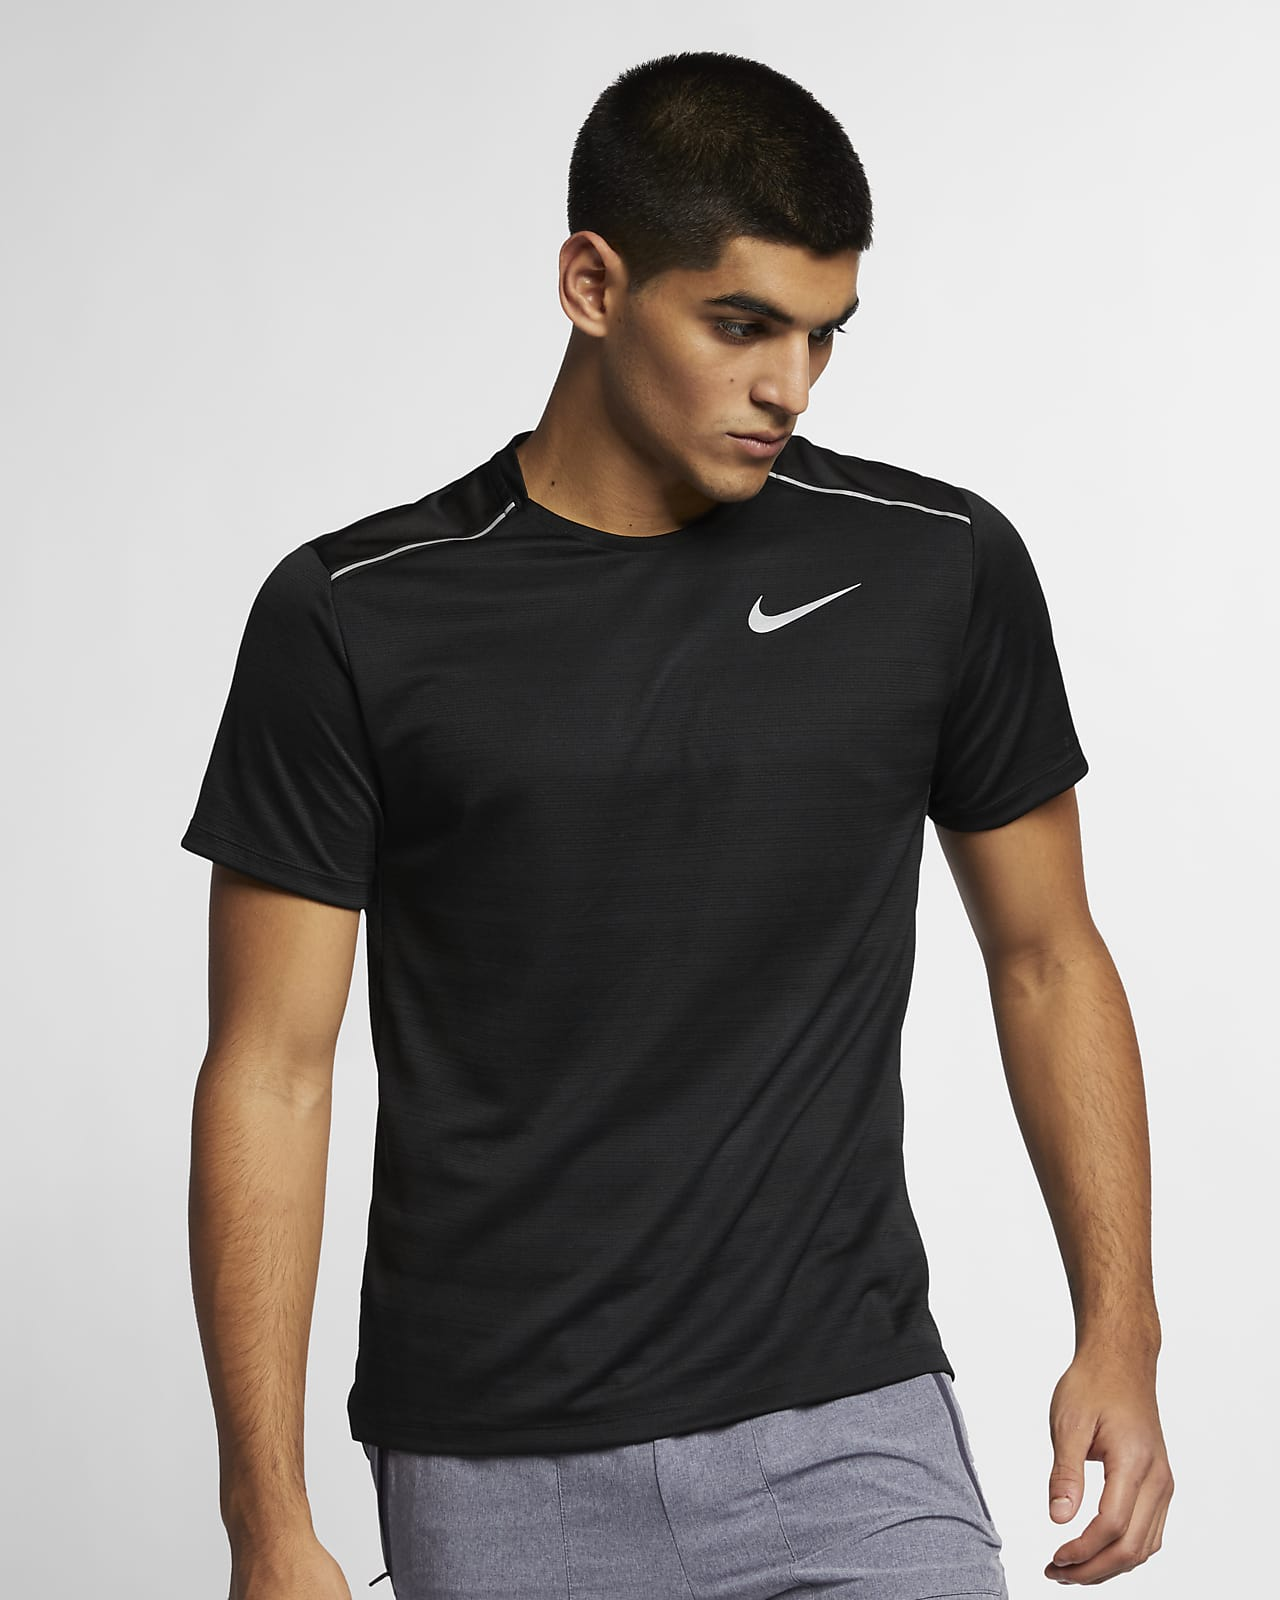 Nike Dri-FIT Miler Men's Short-Sleeve Running Top